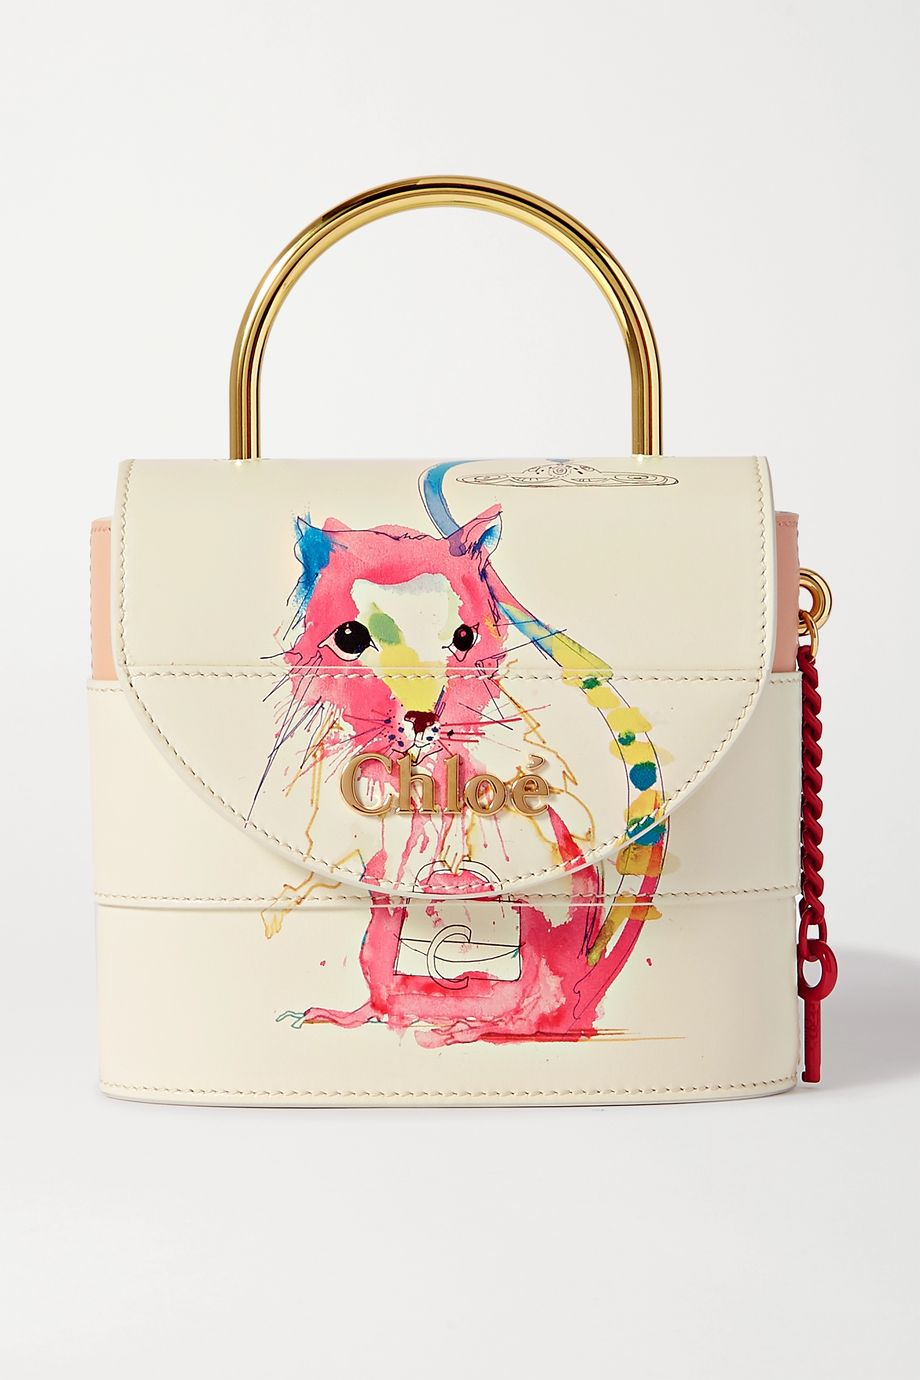 Chloé Aby Lock small printed leather shoulder bag